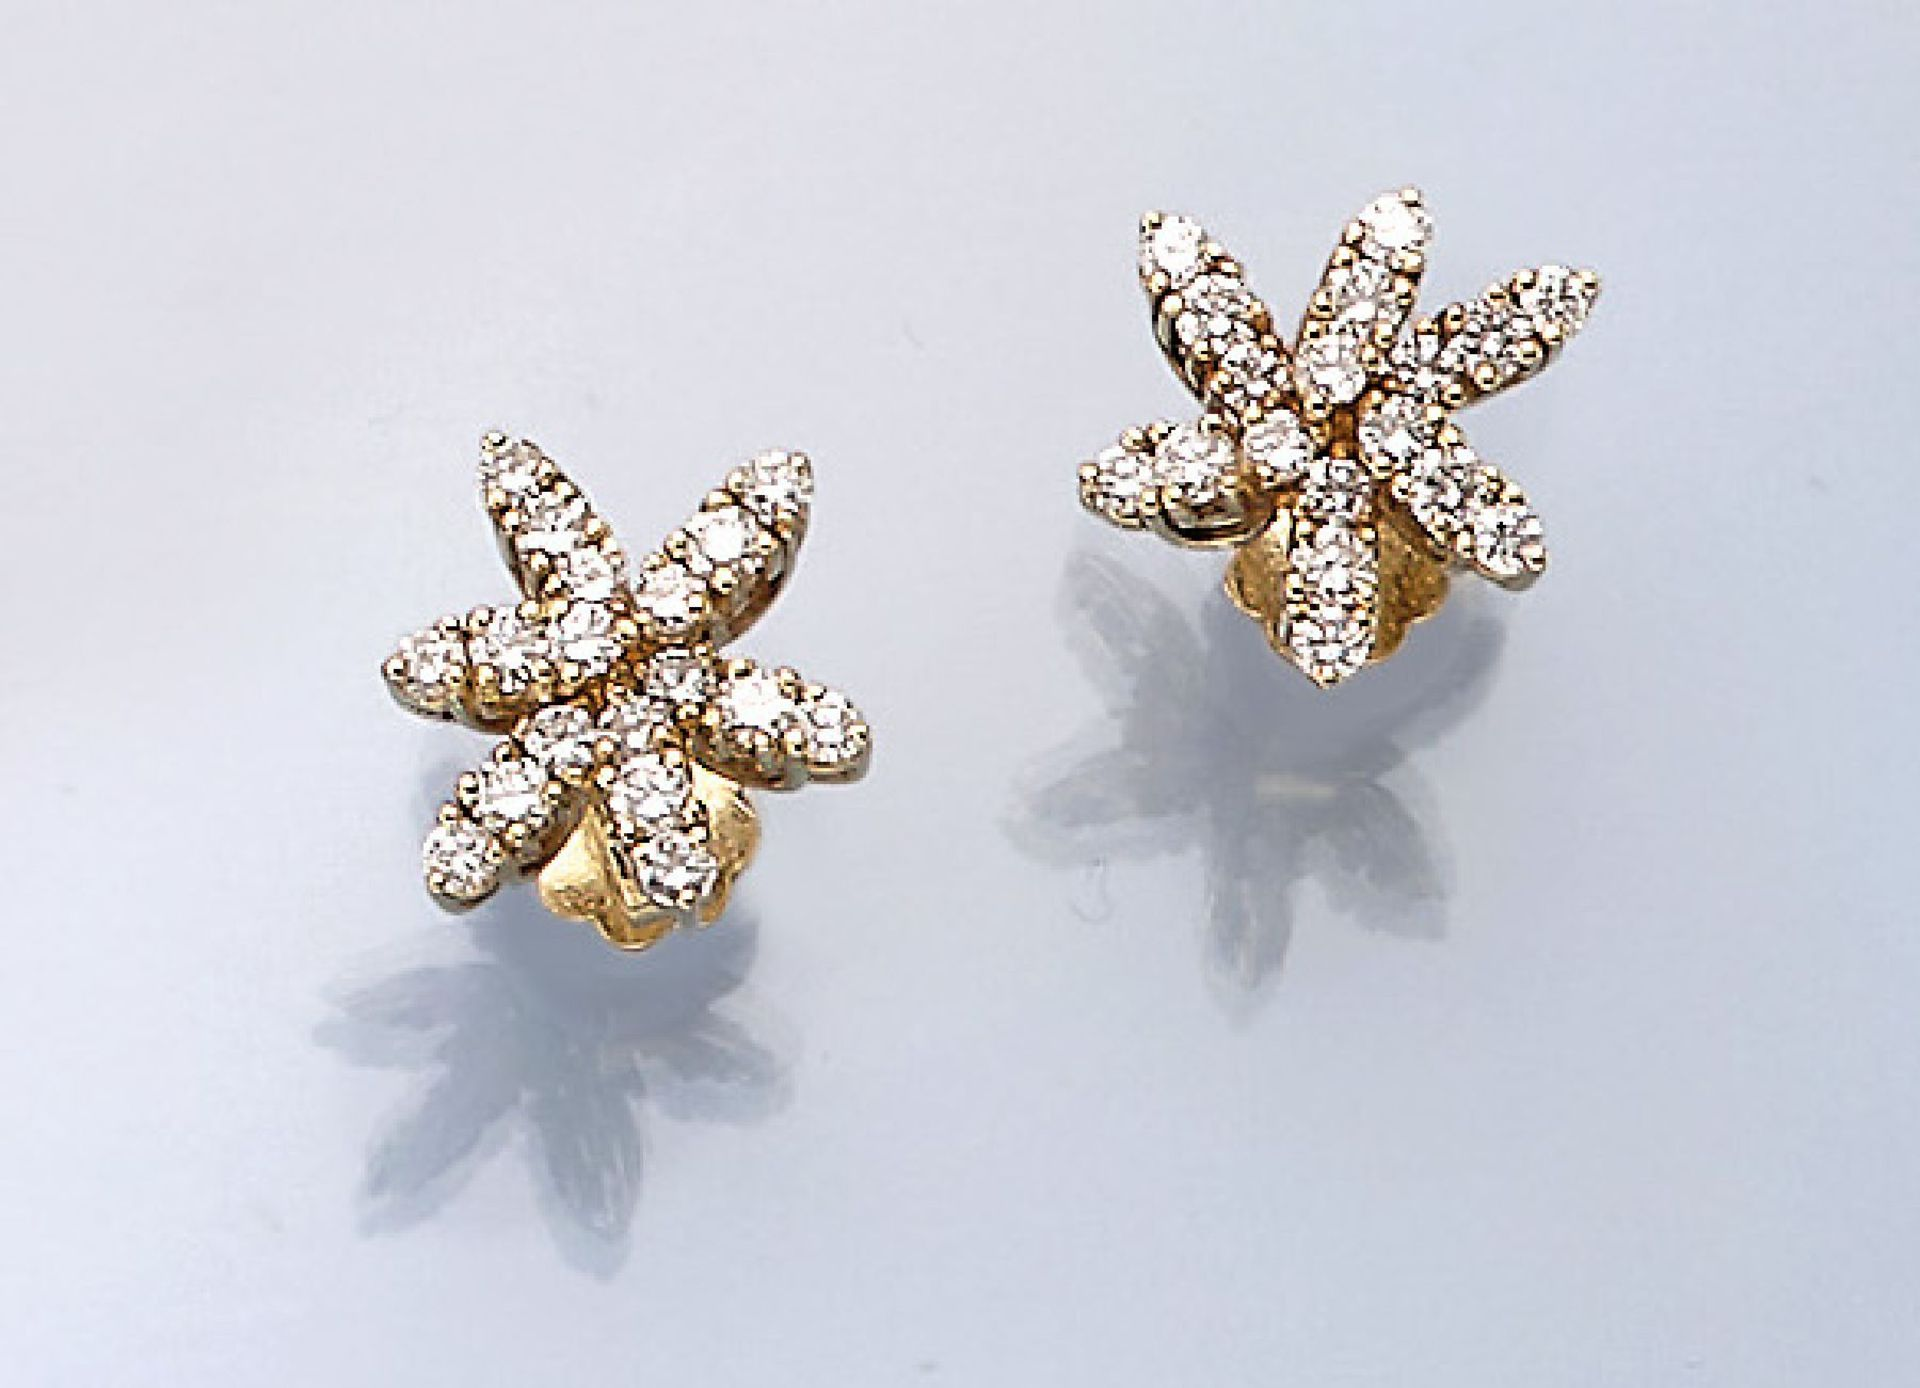 Los 61511 - Pair of 18 kt gold earrings with brilliants , YG 750/000, brilliants total approx. 1.20 ct